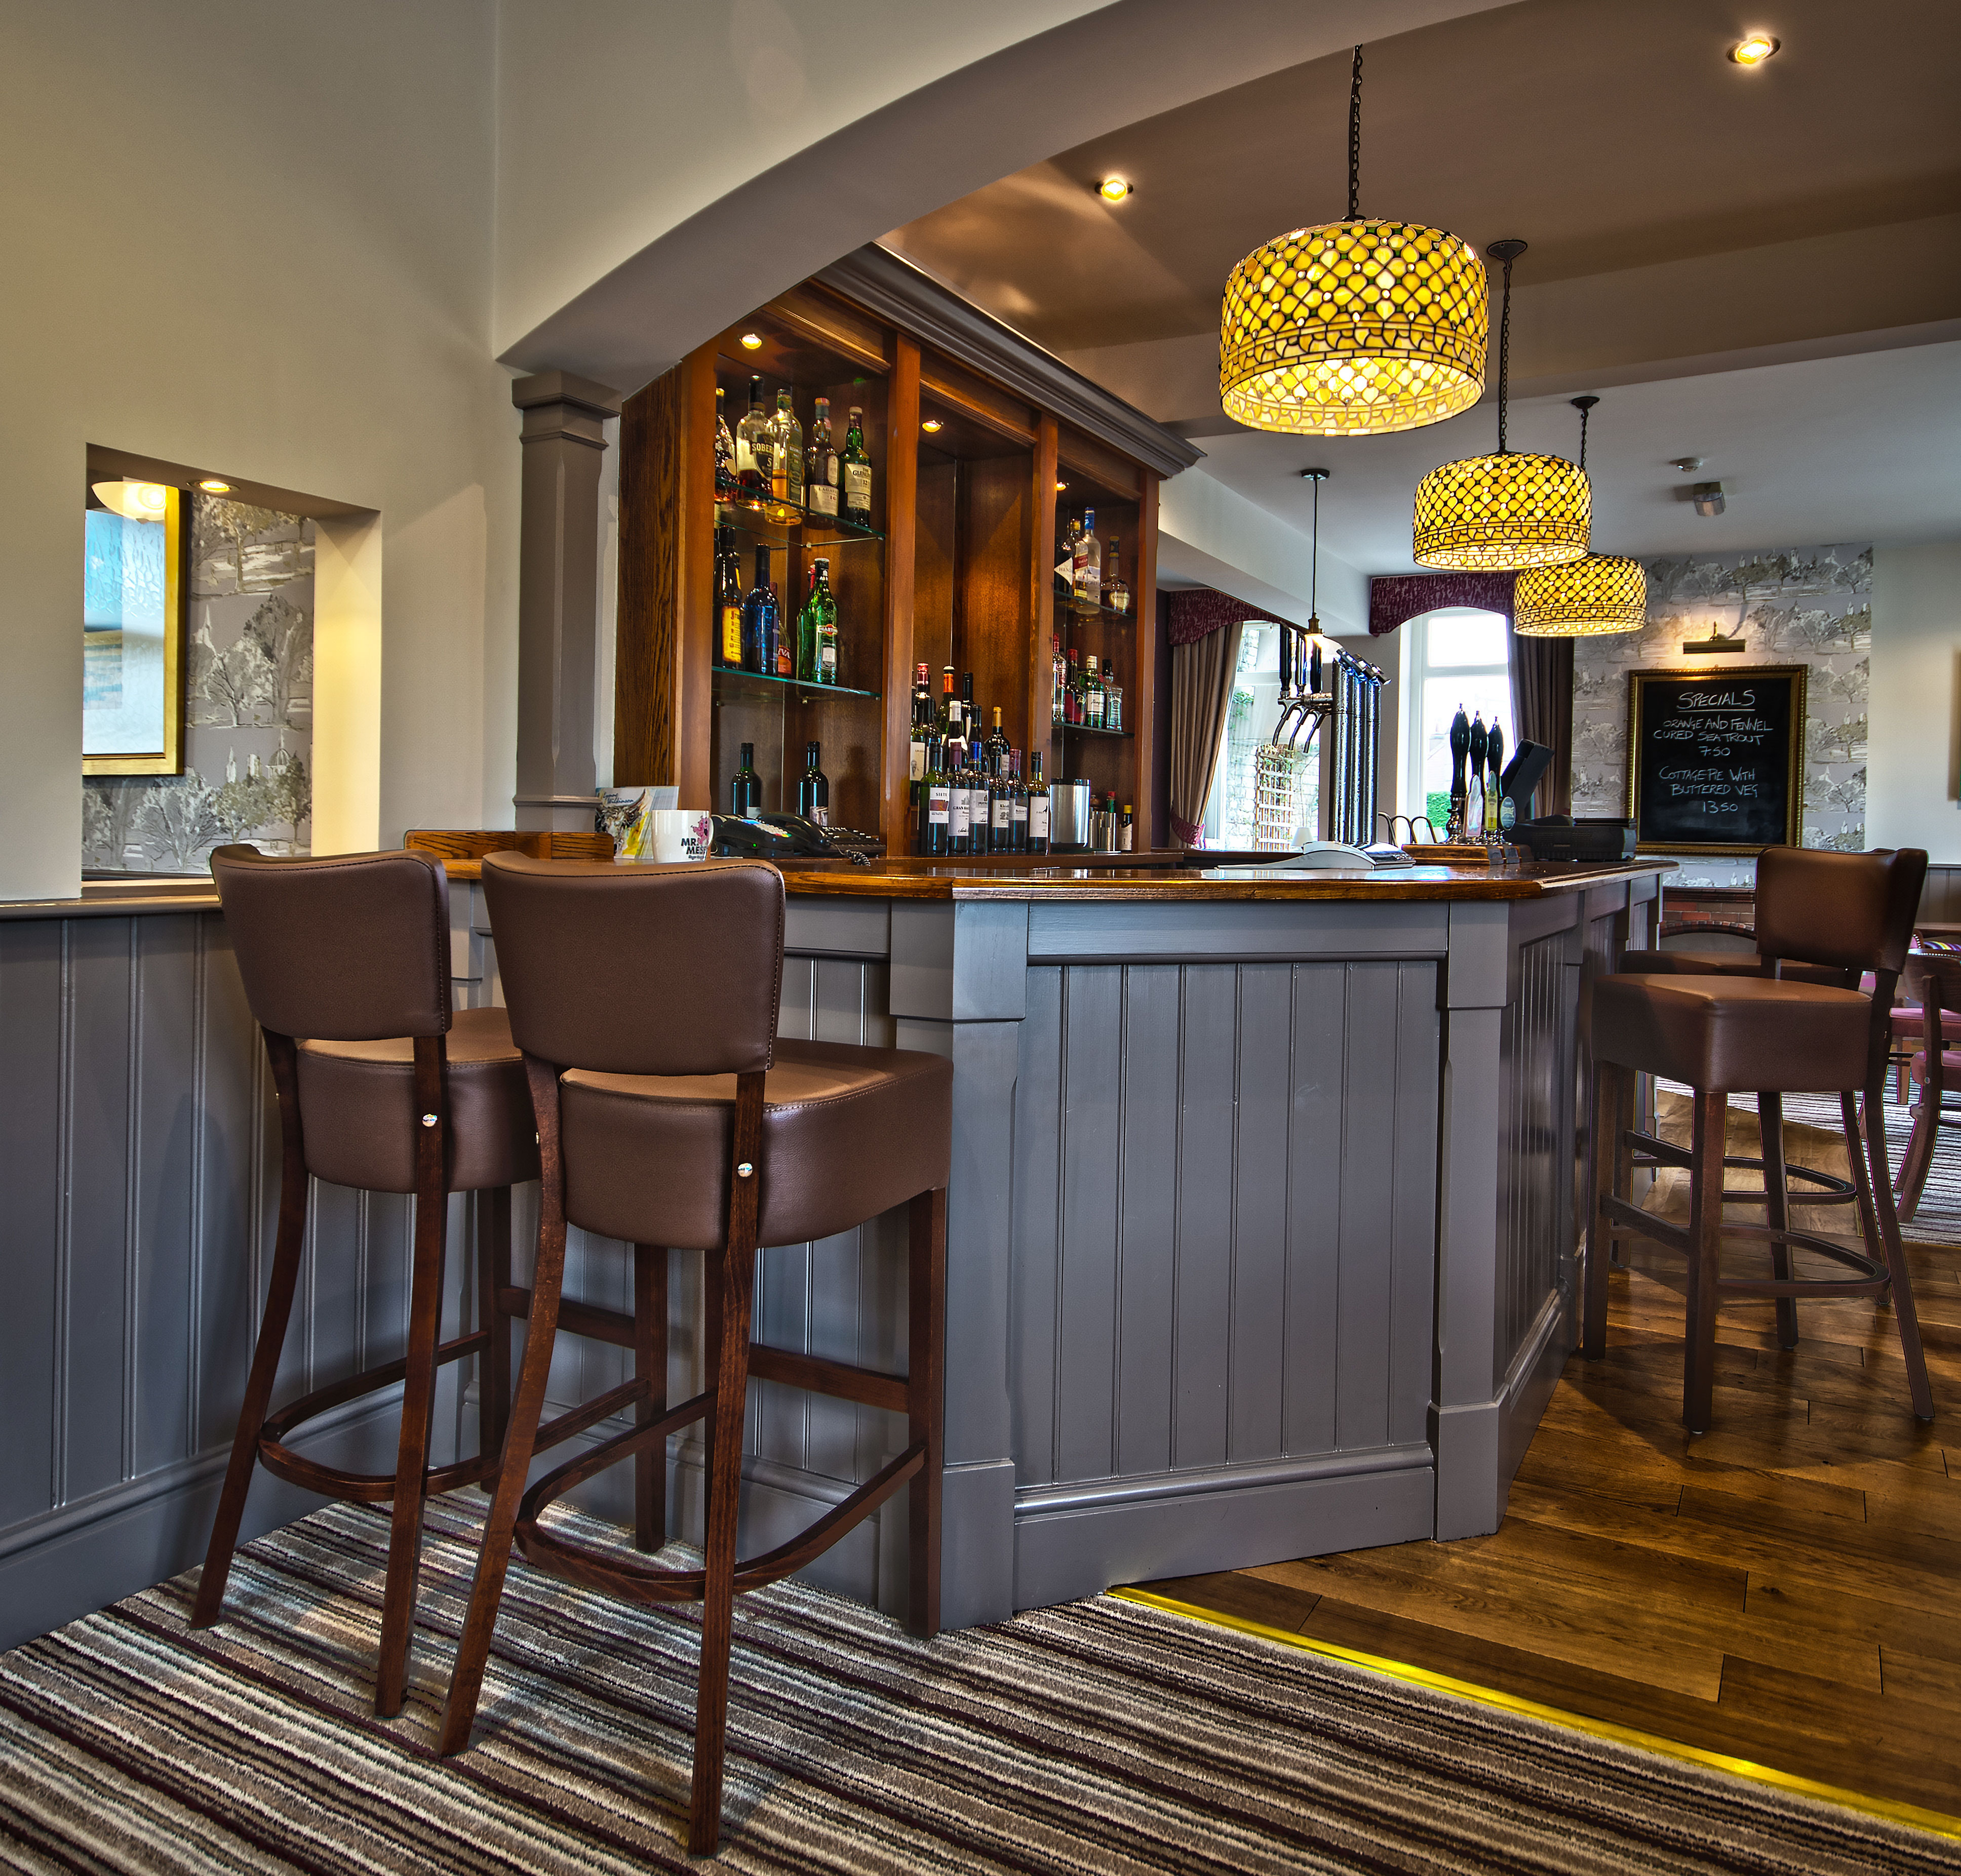 The Samuel Fox Country Inn - South Yorkshire